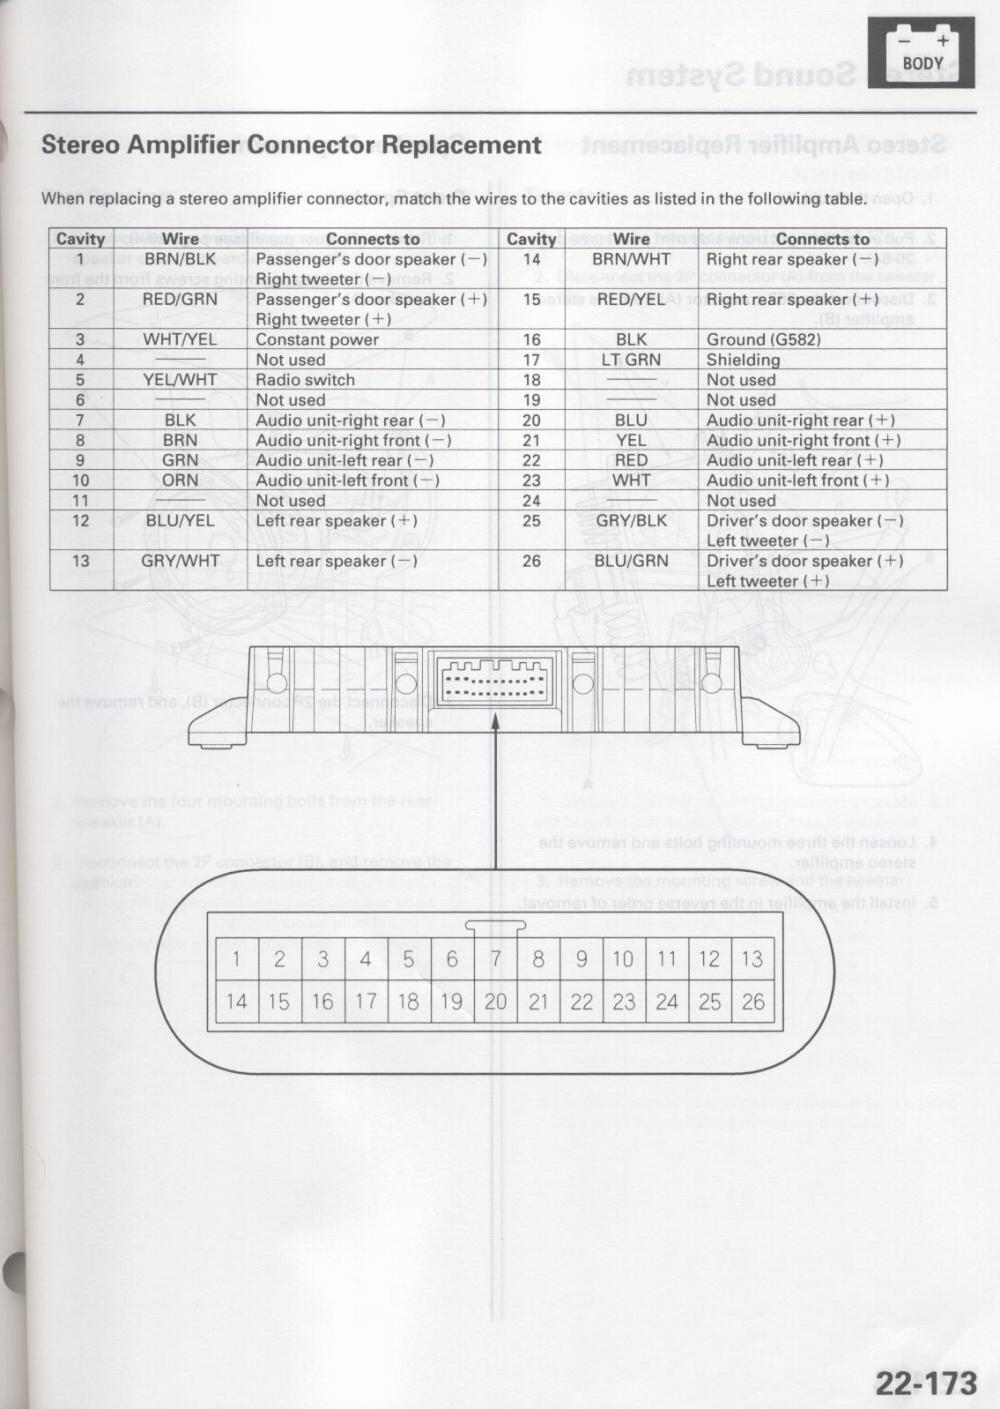 Car Radio Stereo Audio Wiring Diagram Autoradio Connector Wire New Installation Schematic Schema Esquema De Conexiones Anschlusskammern Konektor